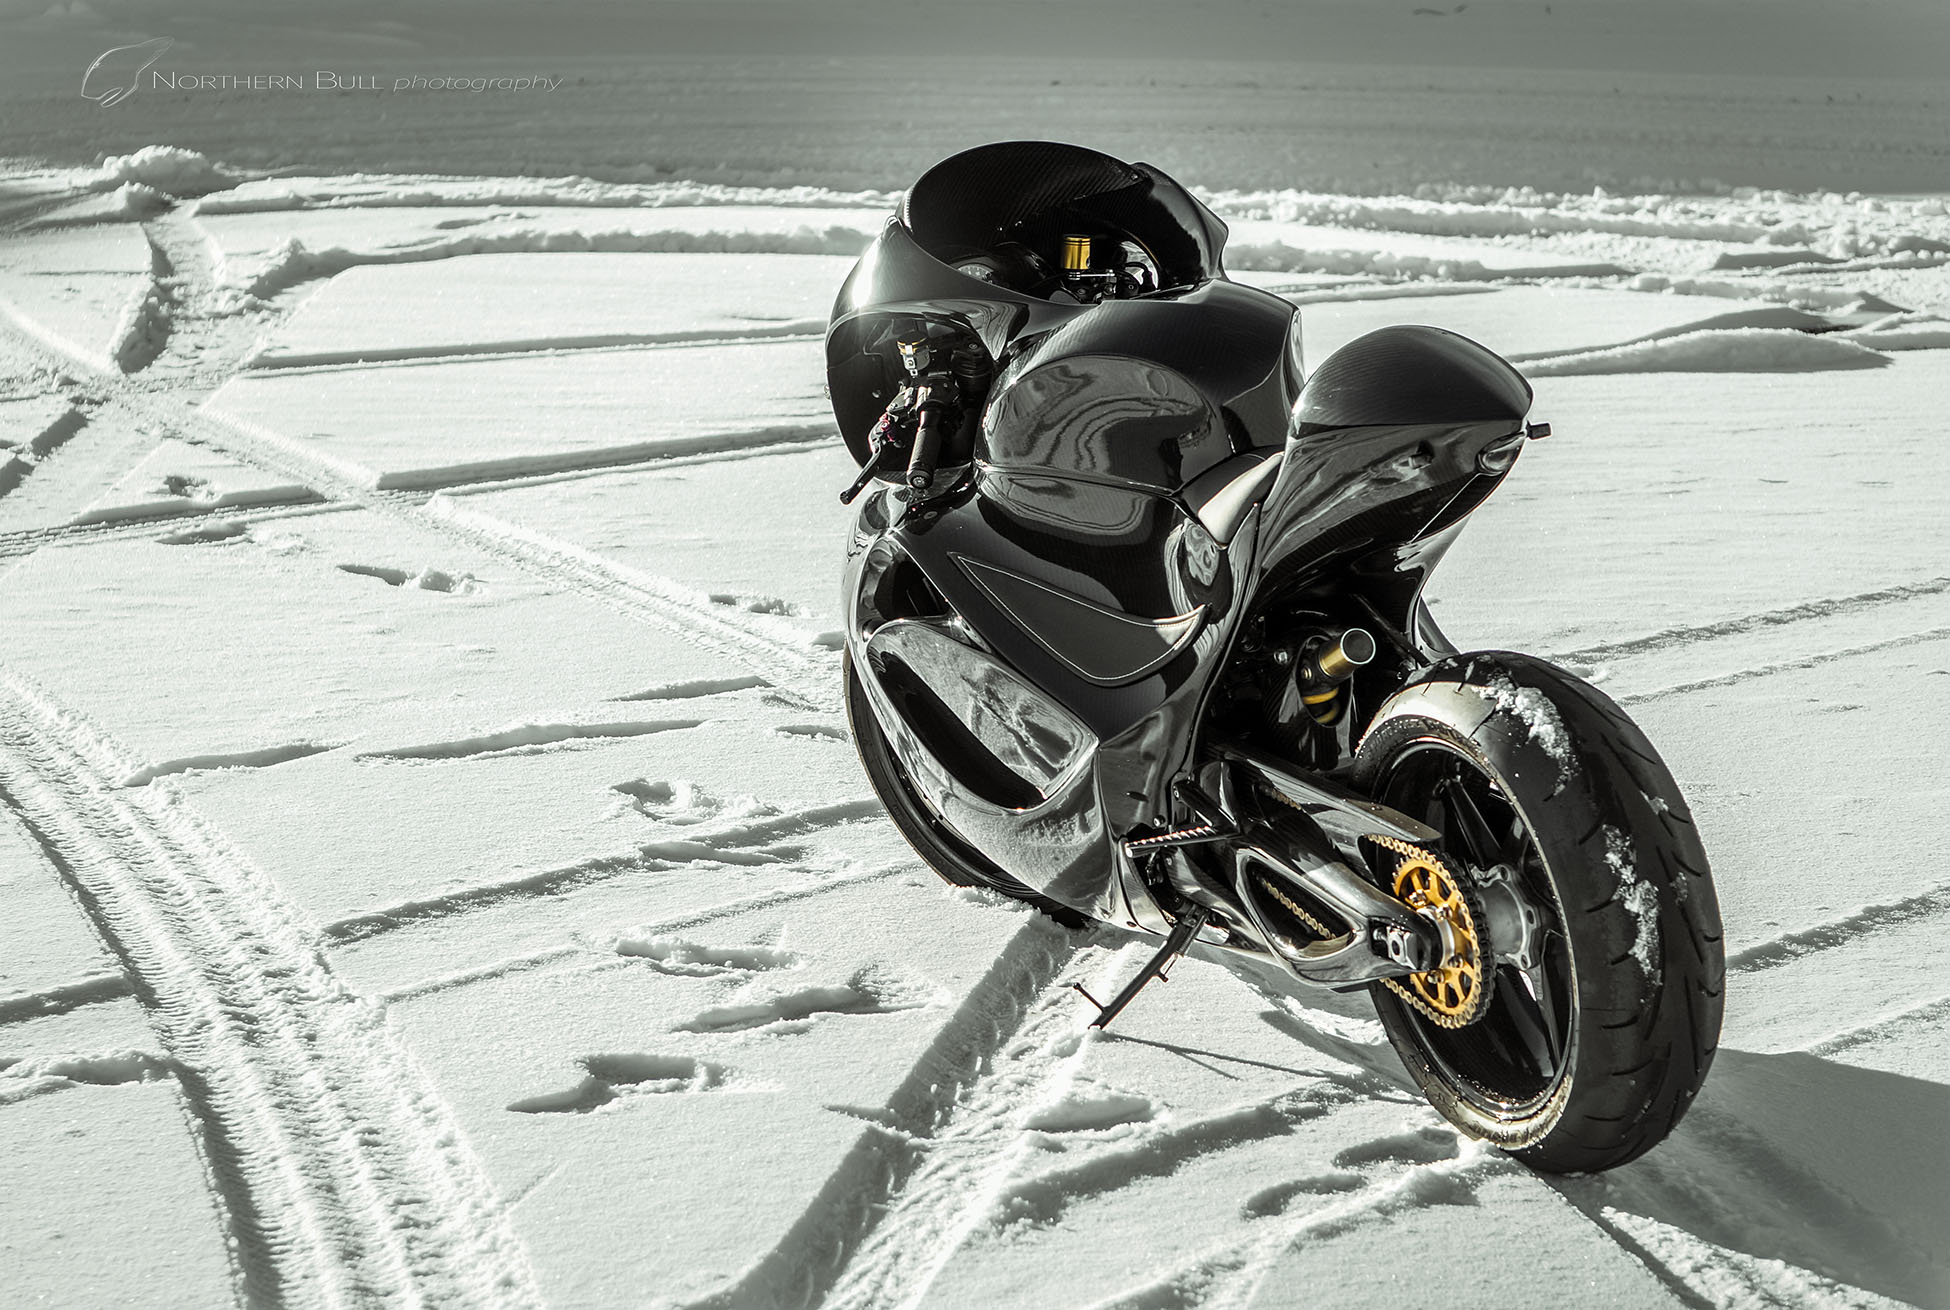 northern_bull_carbon_bike_snow.jpg